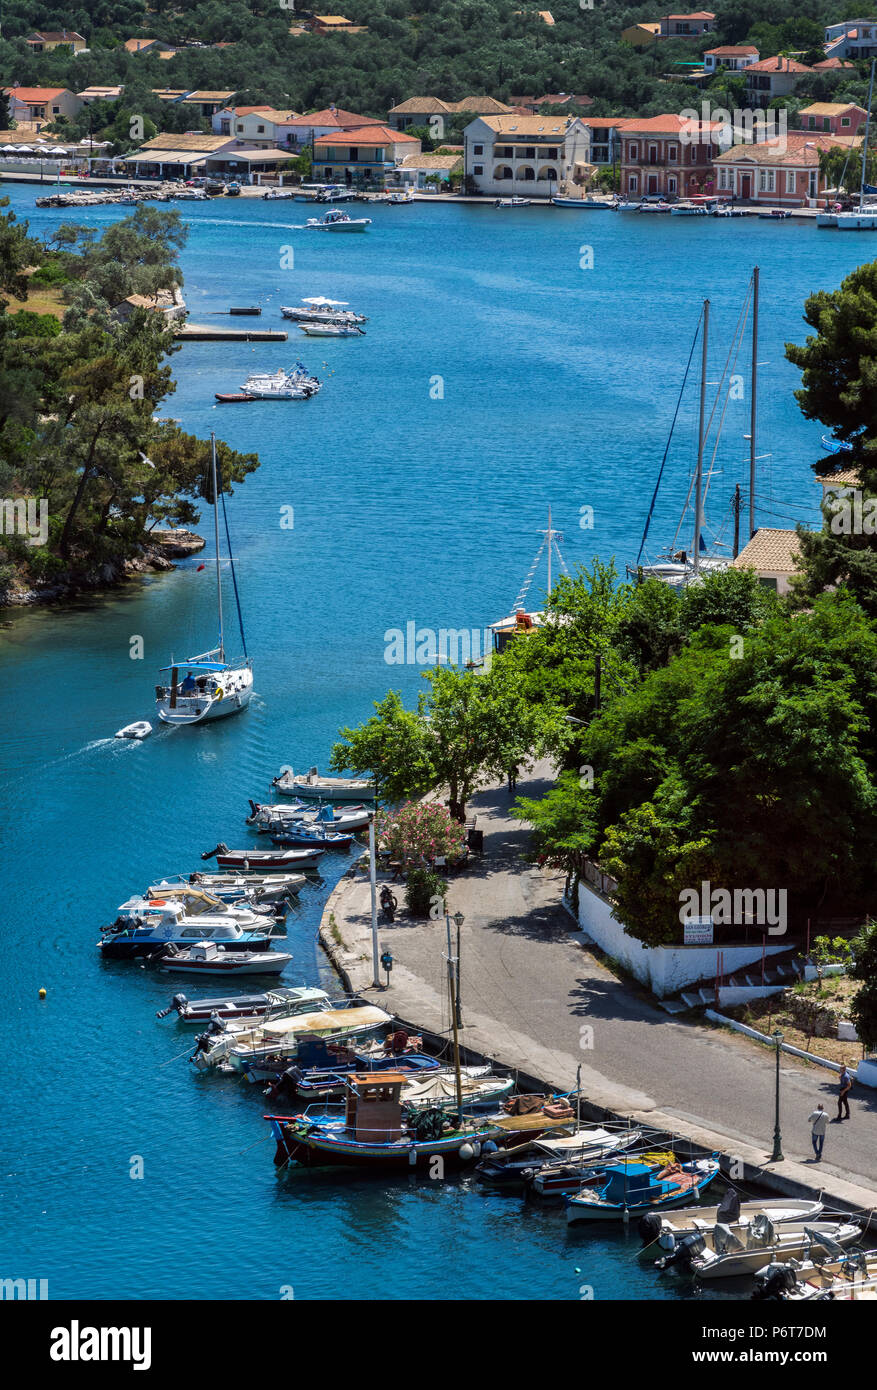 Entering the Port of Gaios, Paxos. - Stock Image